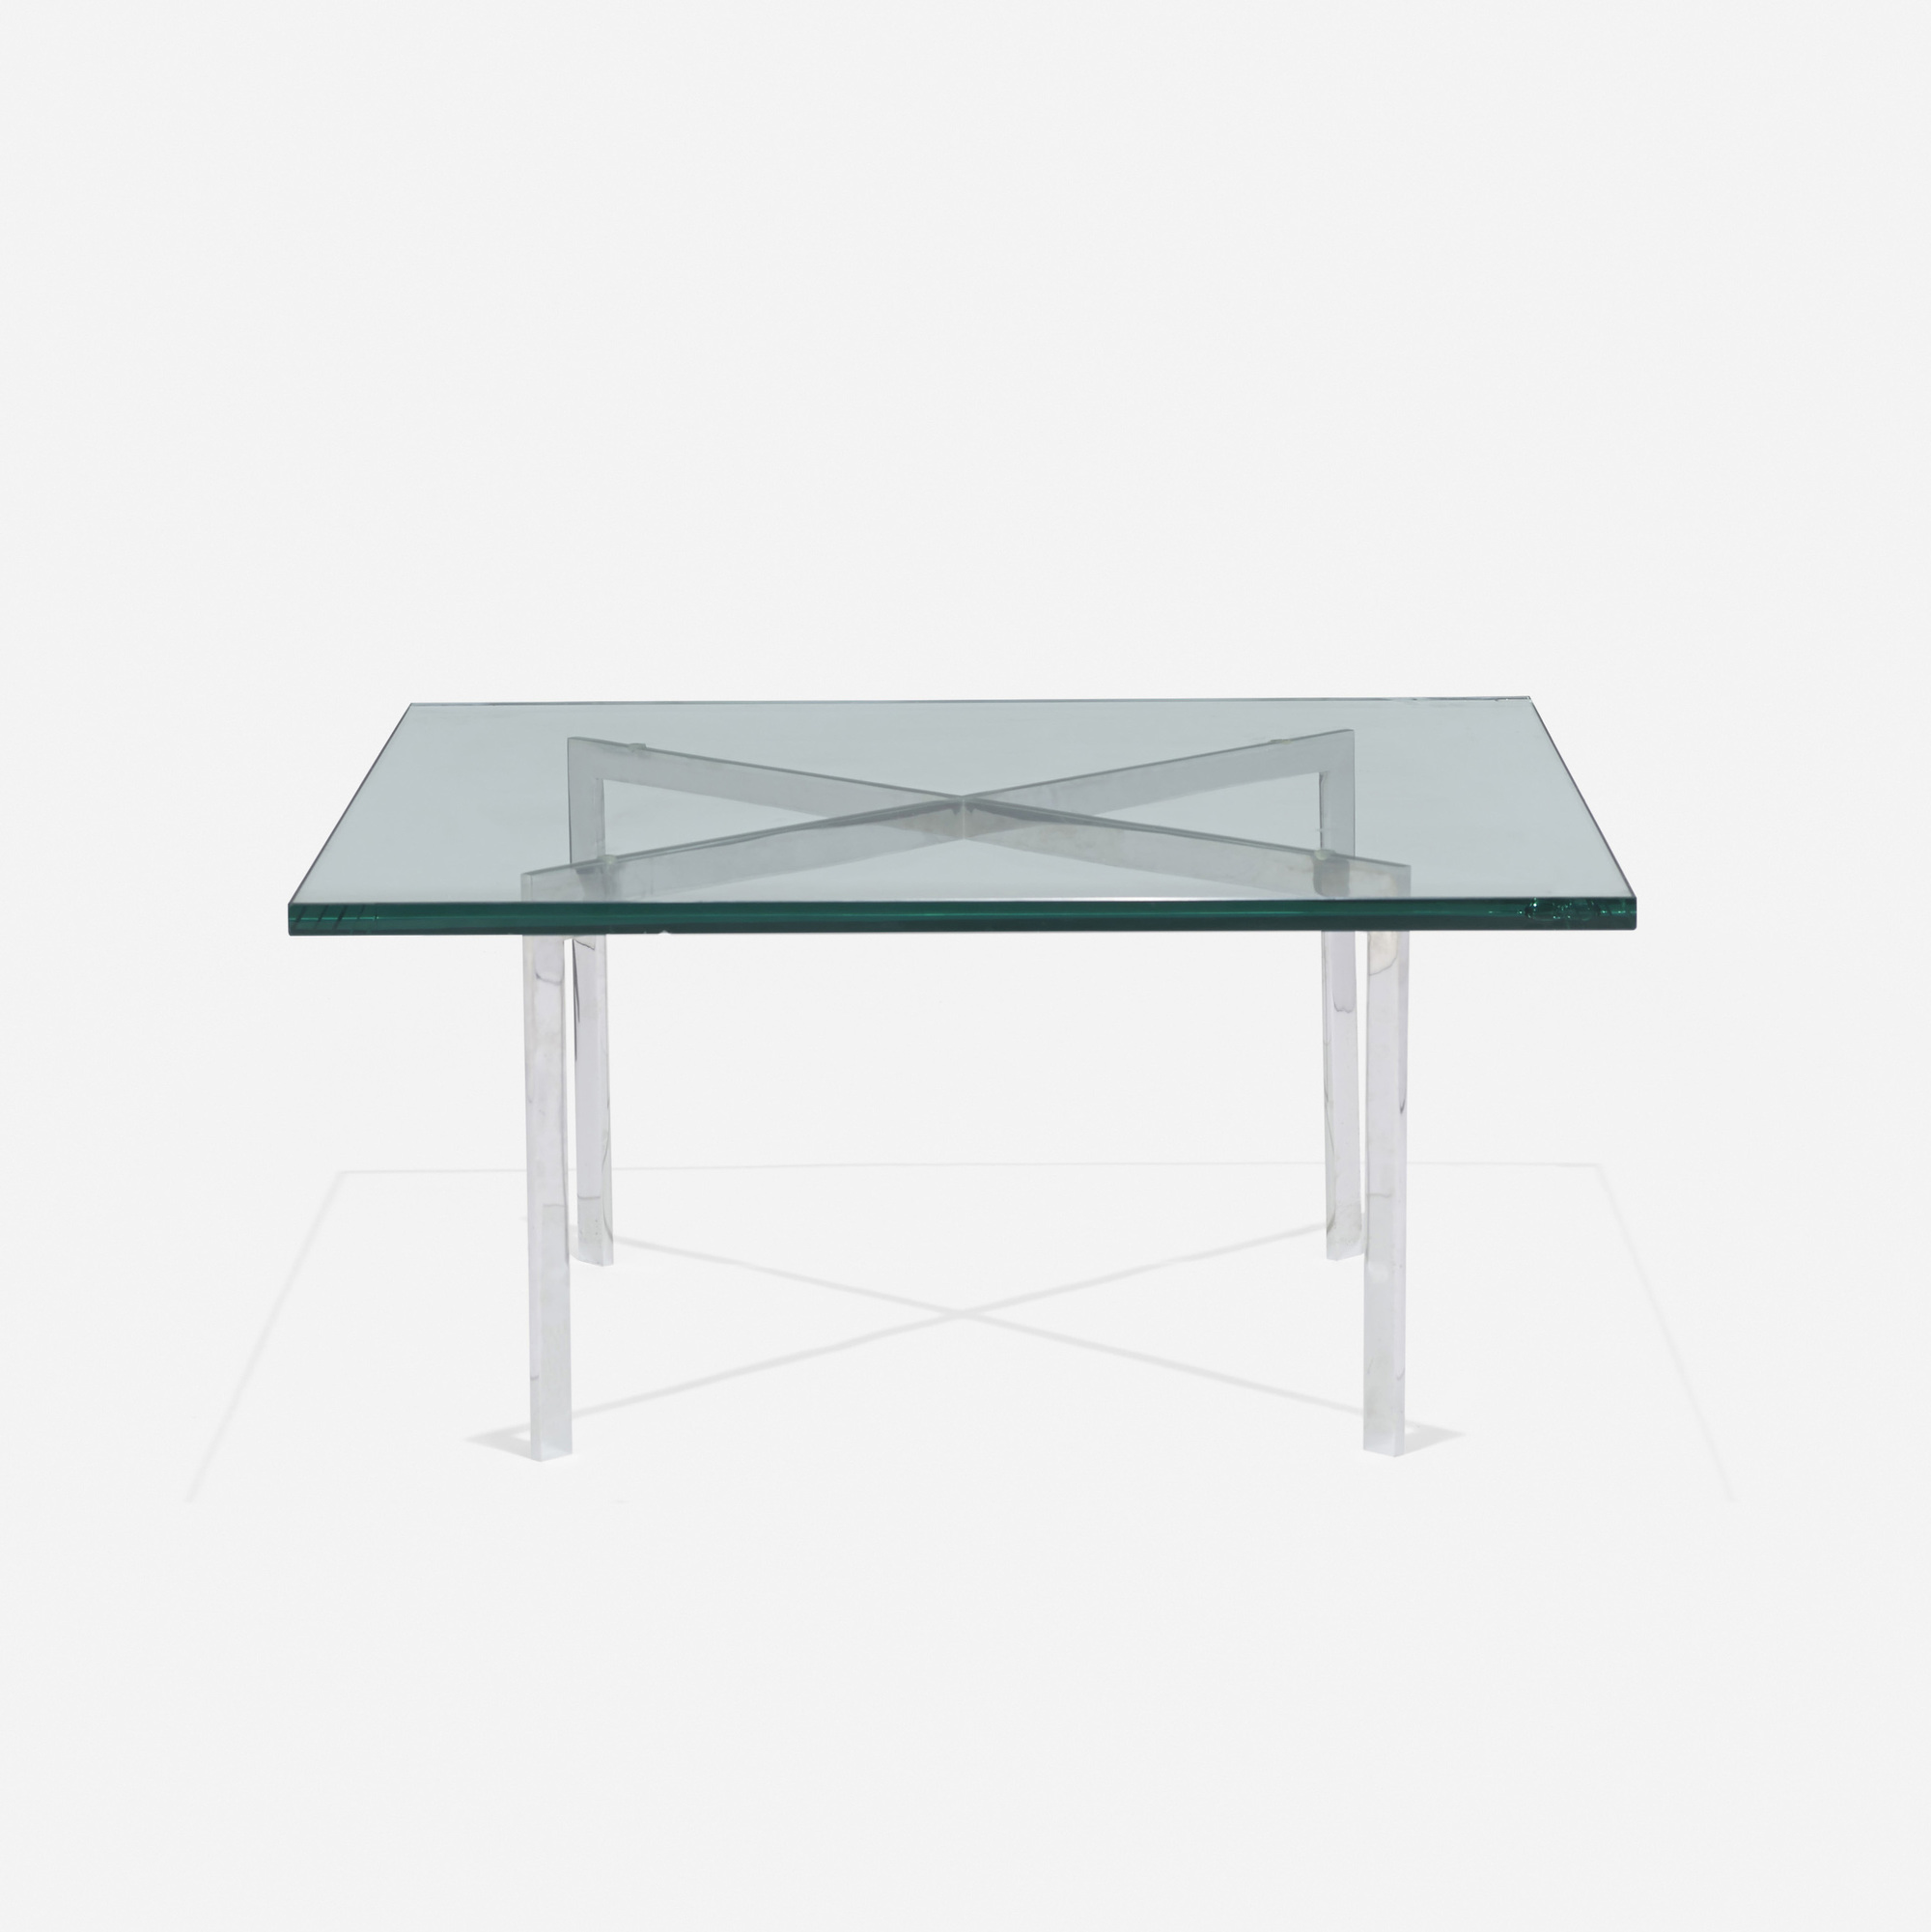 147: Ludwig Mies van der Rohe / custom Barcelona coffee table from 860 Lake Shore Drive, Chicago (2 of 3)